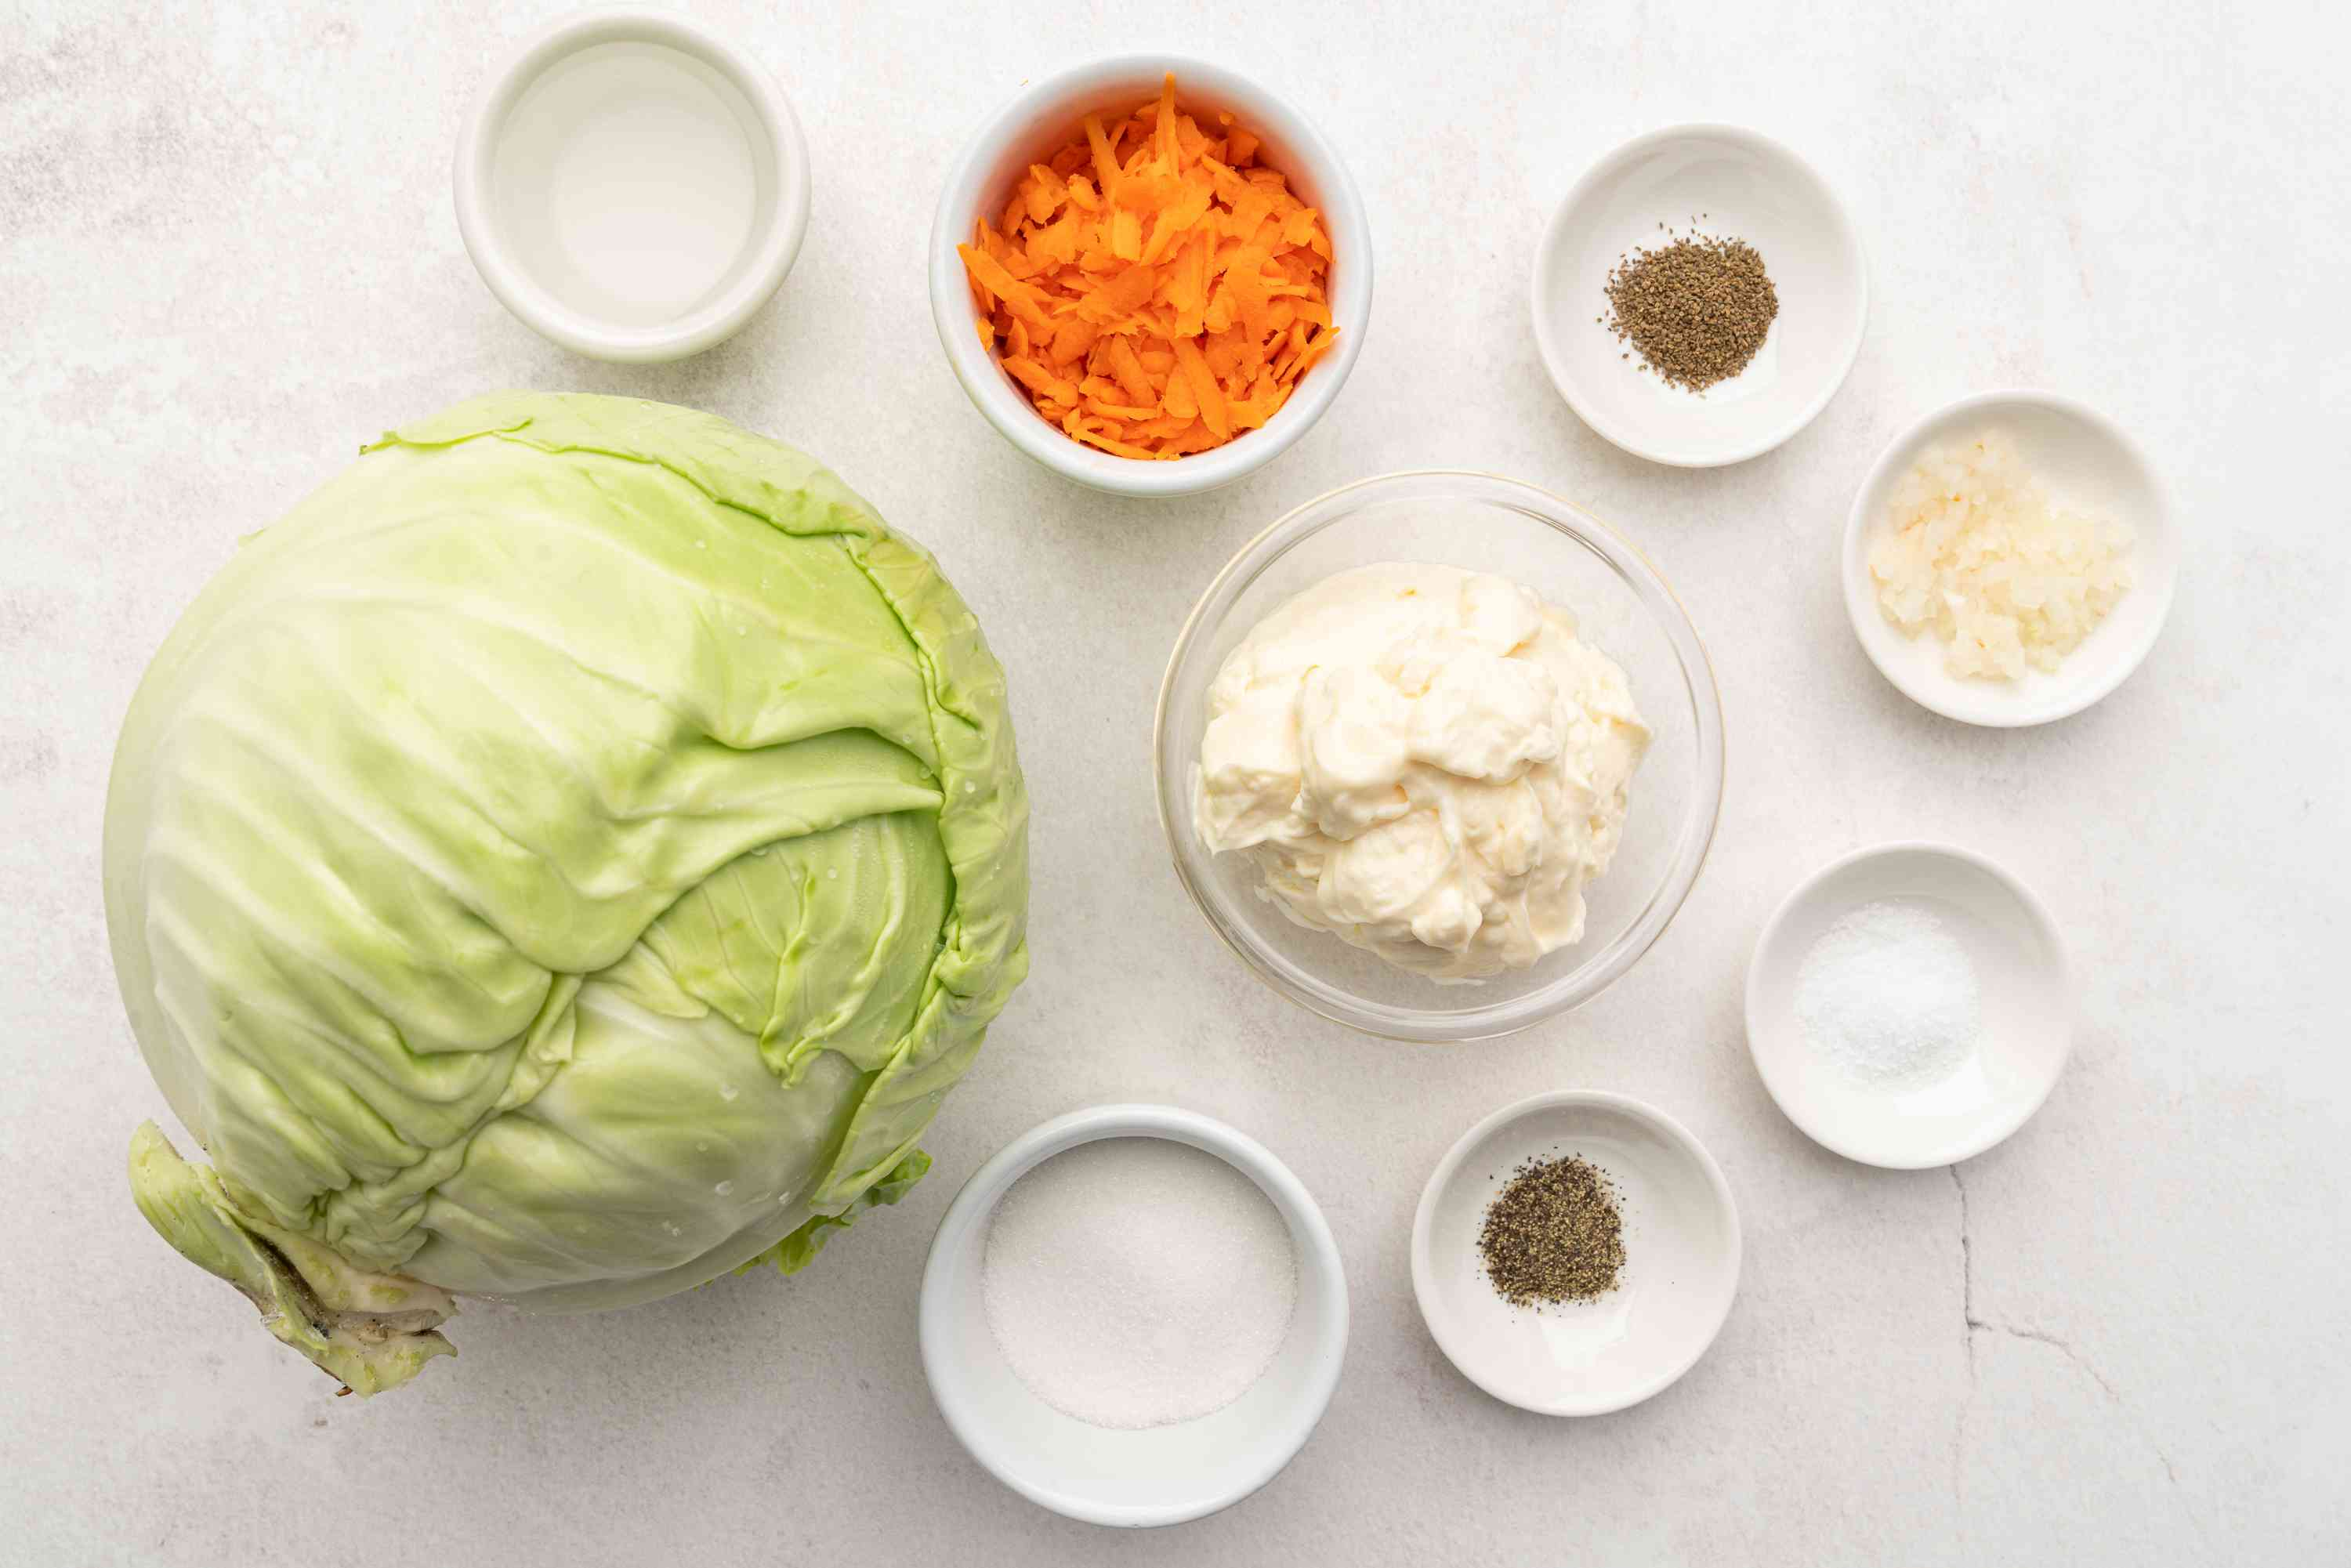 Coleslaw With Creamy Tangy Dressing ingredients